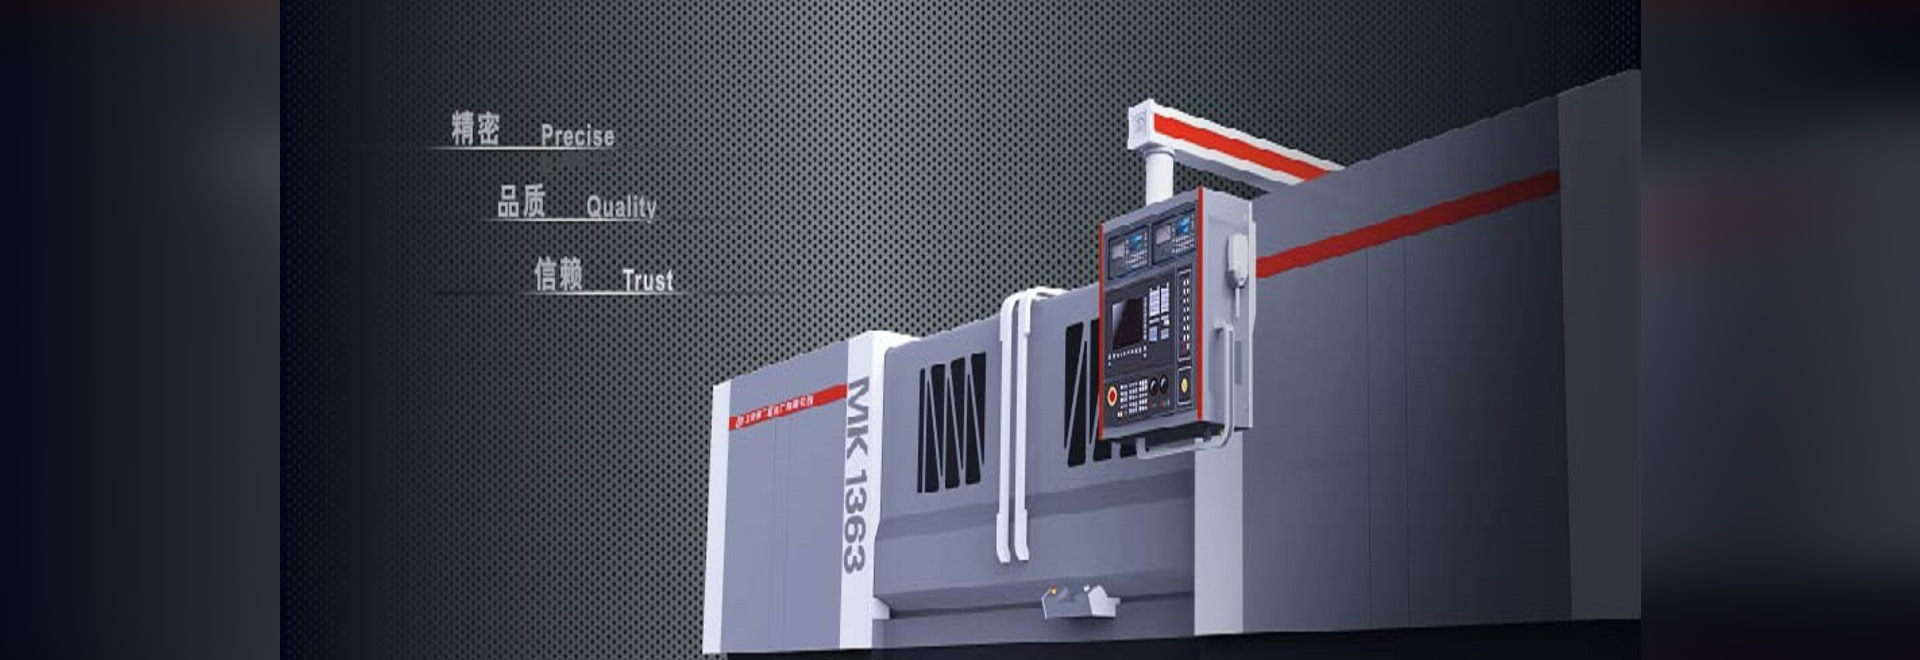 60 Years Creating Machine Tool Dreams, and Beier Set Out Again